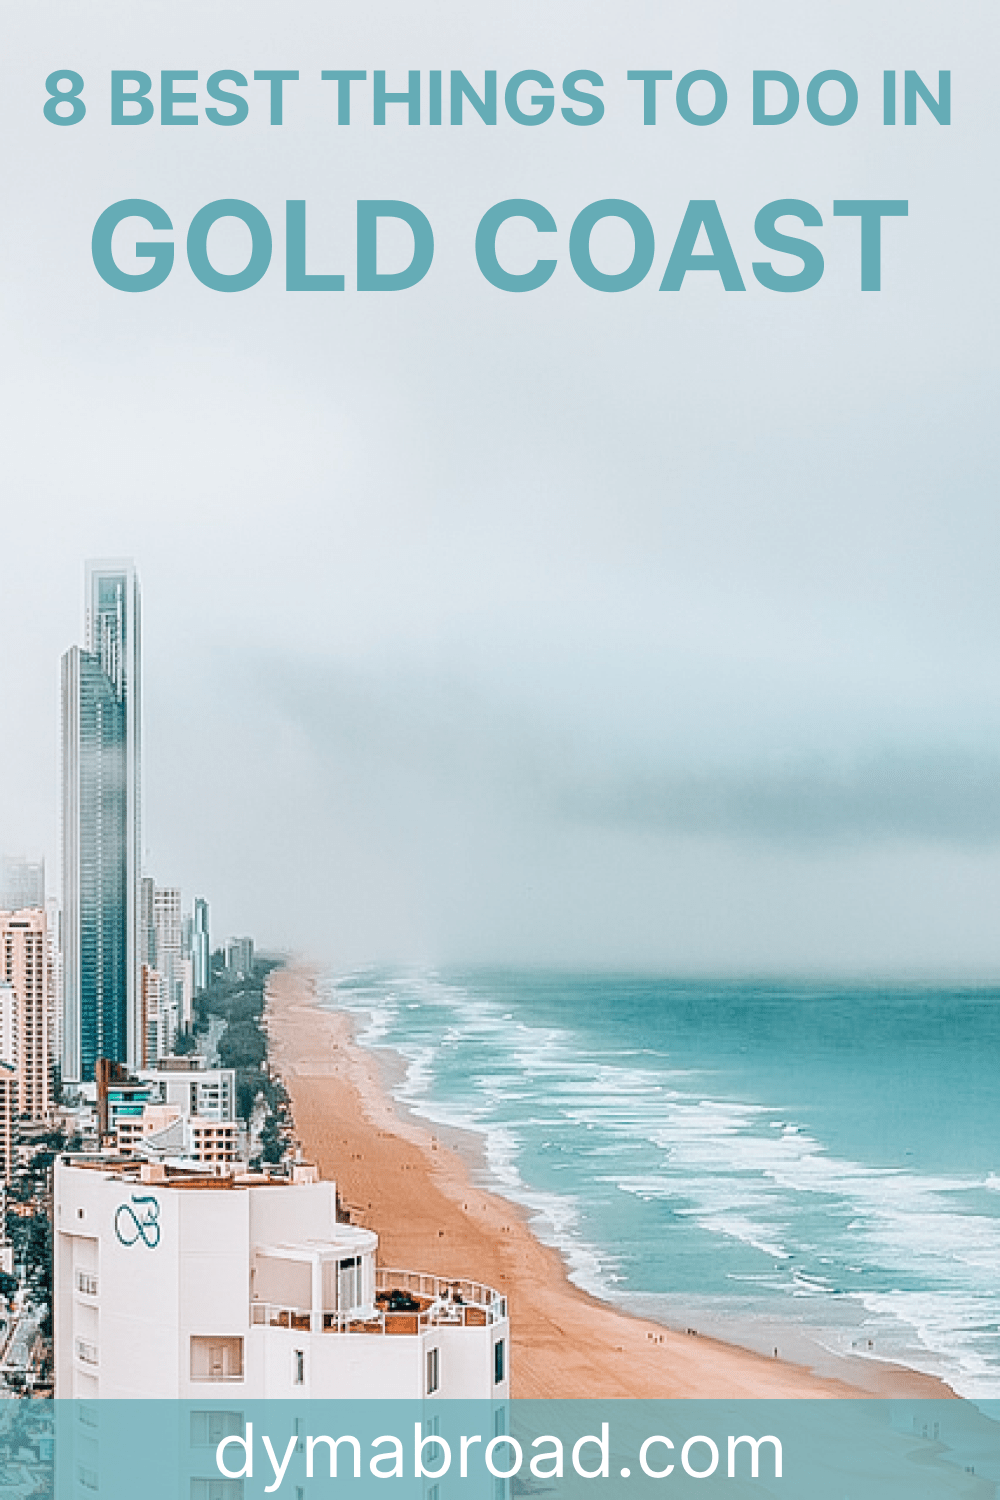 Best things to do in Gold Coast Pinterest Image 1